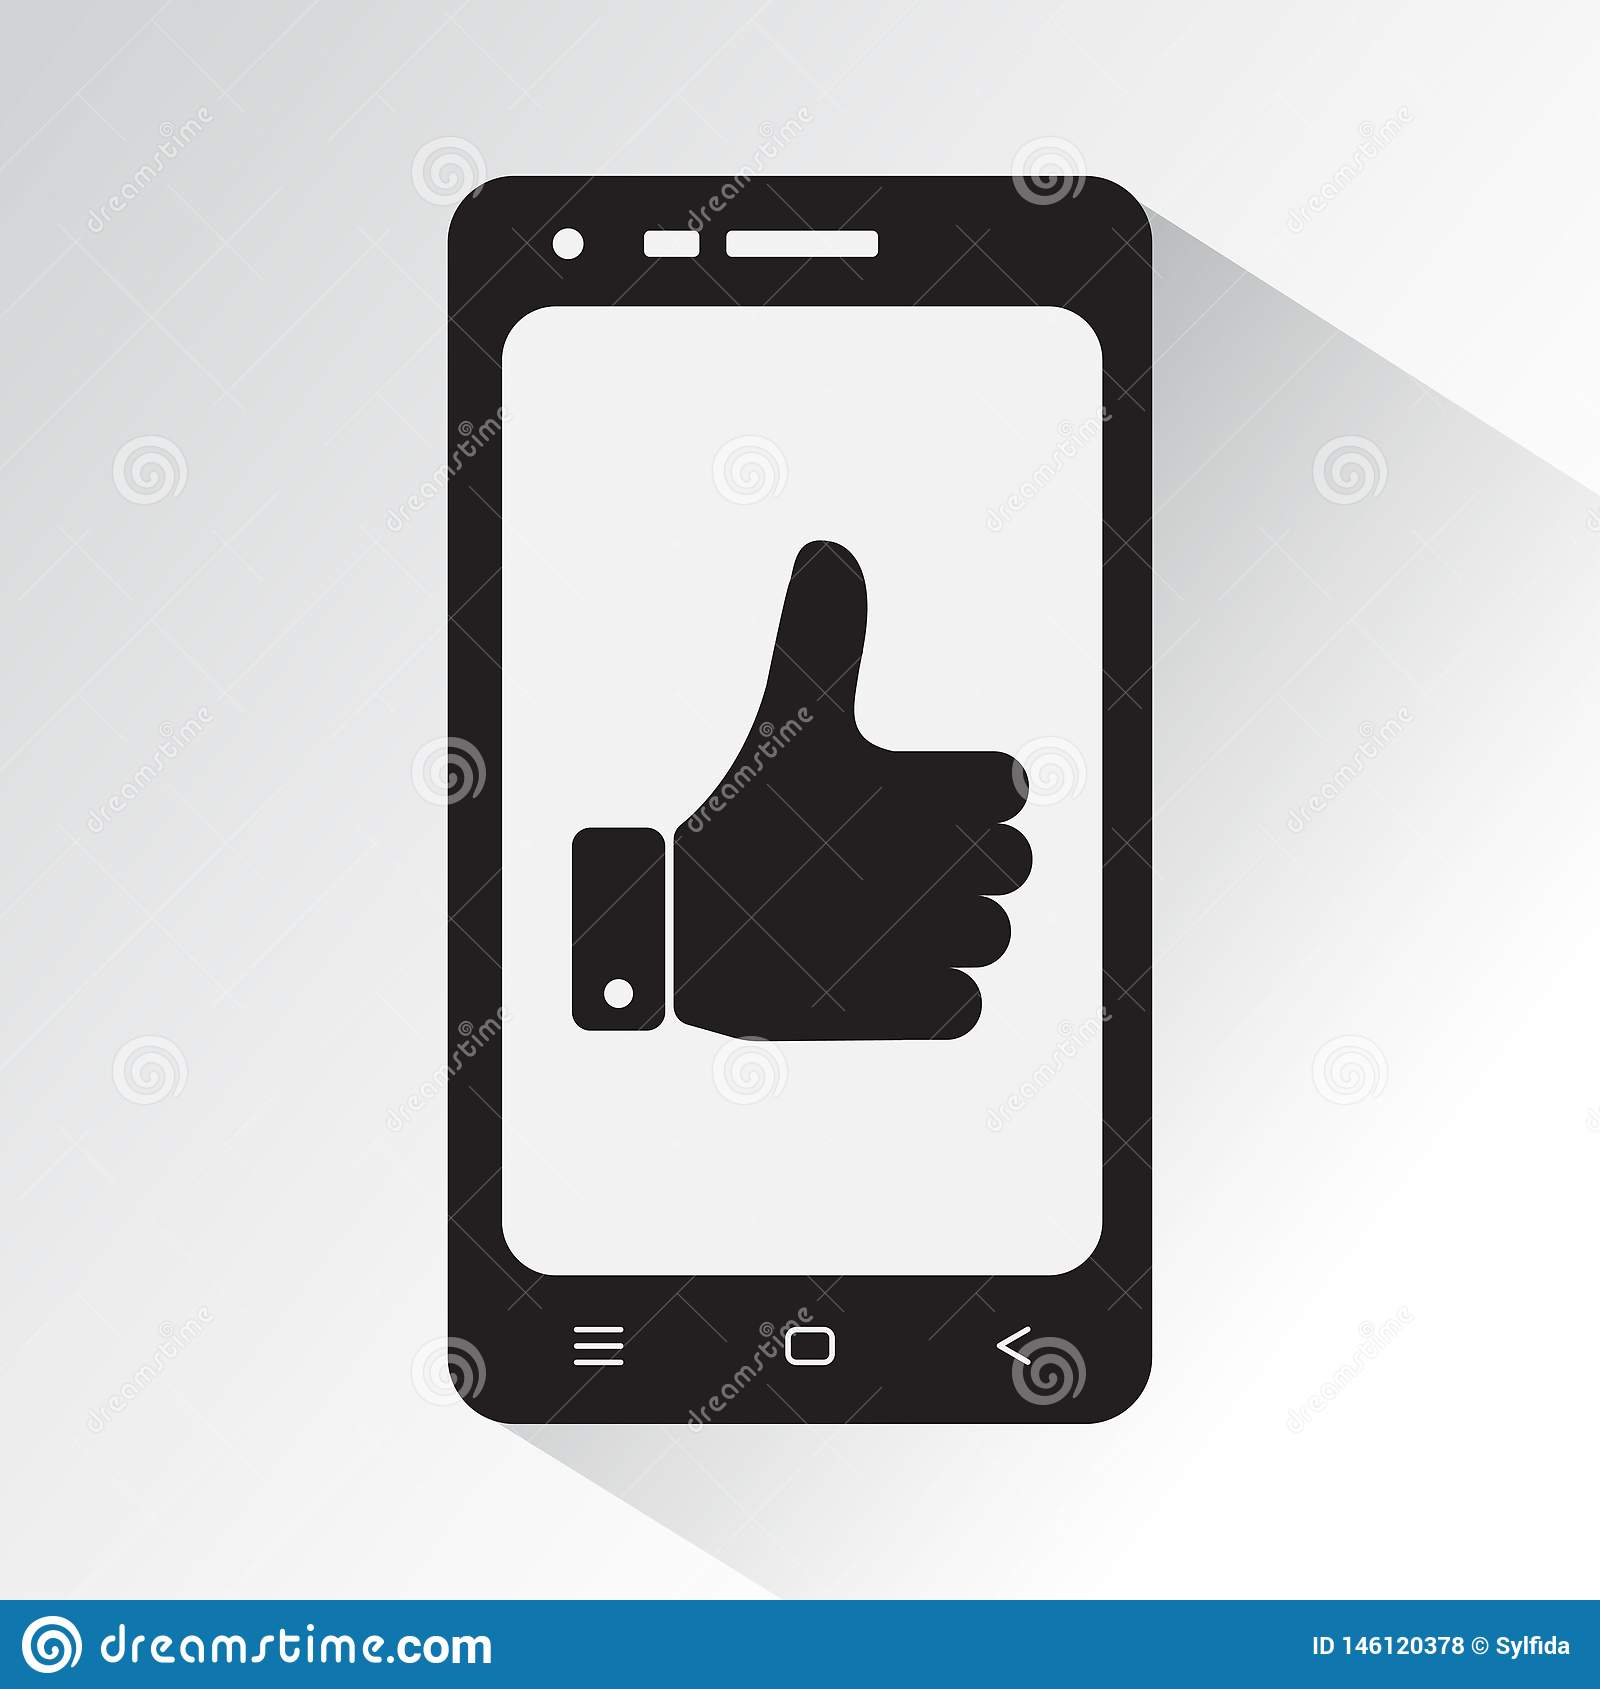 Black and white phone with symbol thumb up. Flat icon of smartphone. Vector